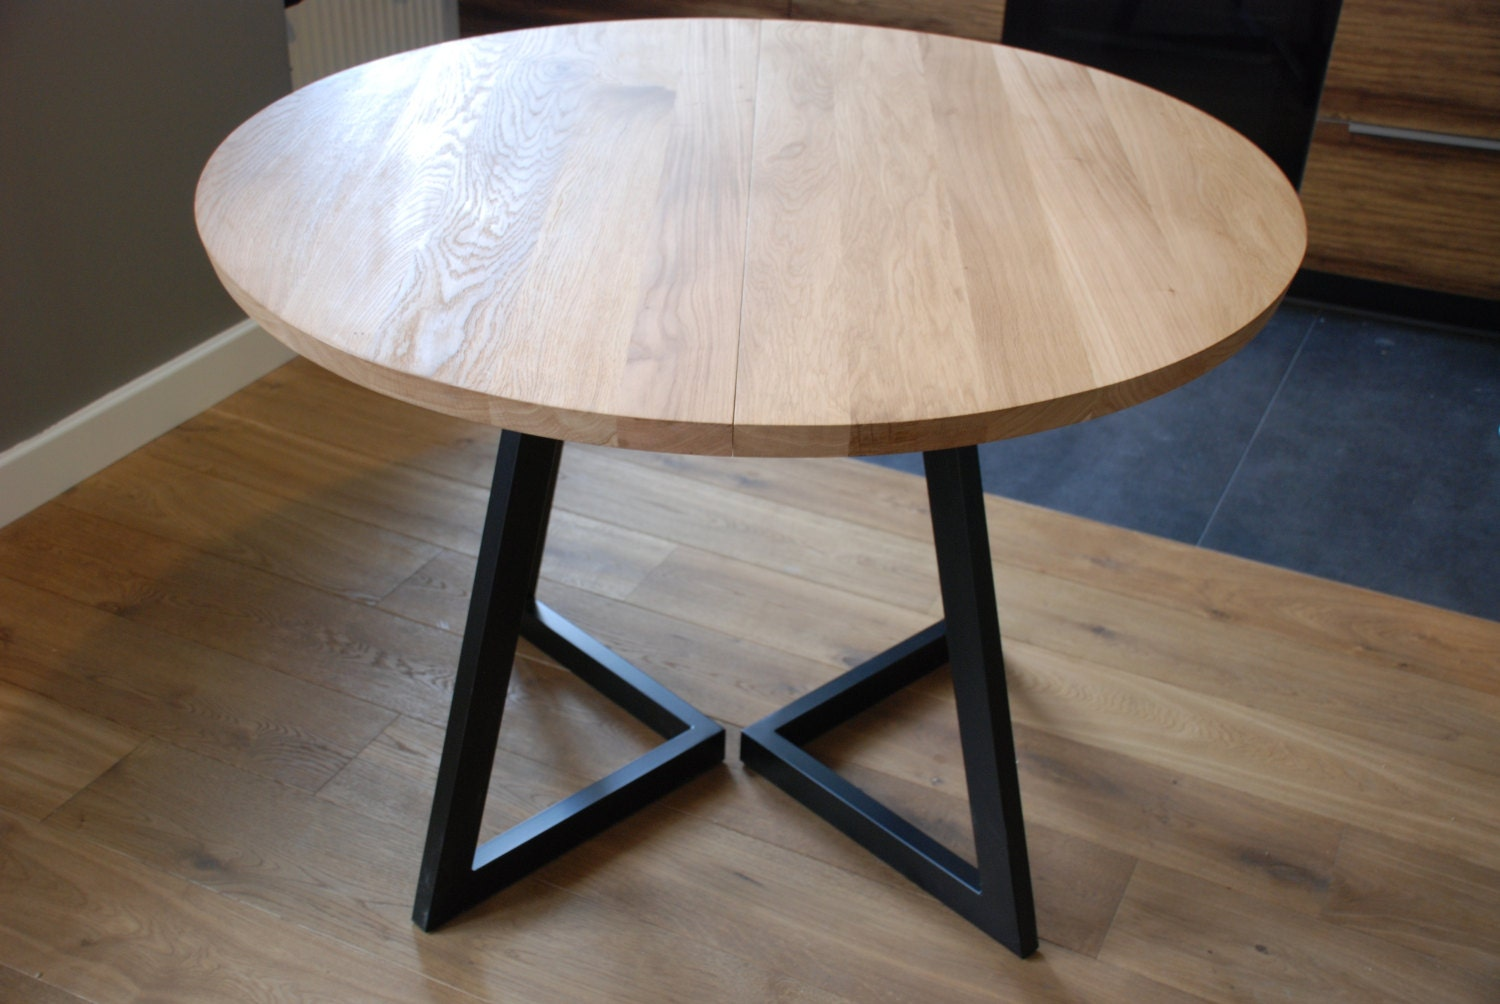 Bois et table ronde rallonges design moderne en acier for Table ronde rallonge design